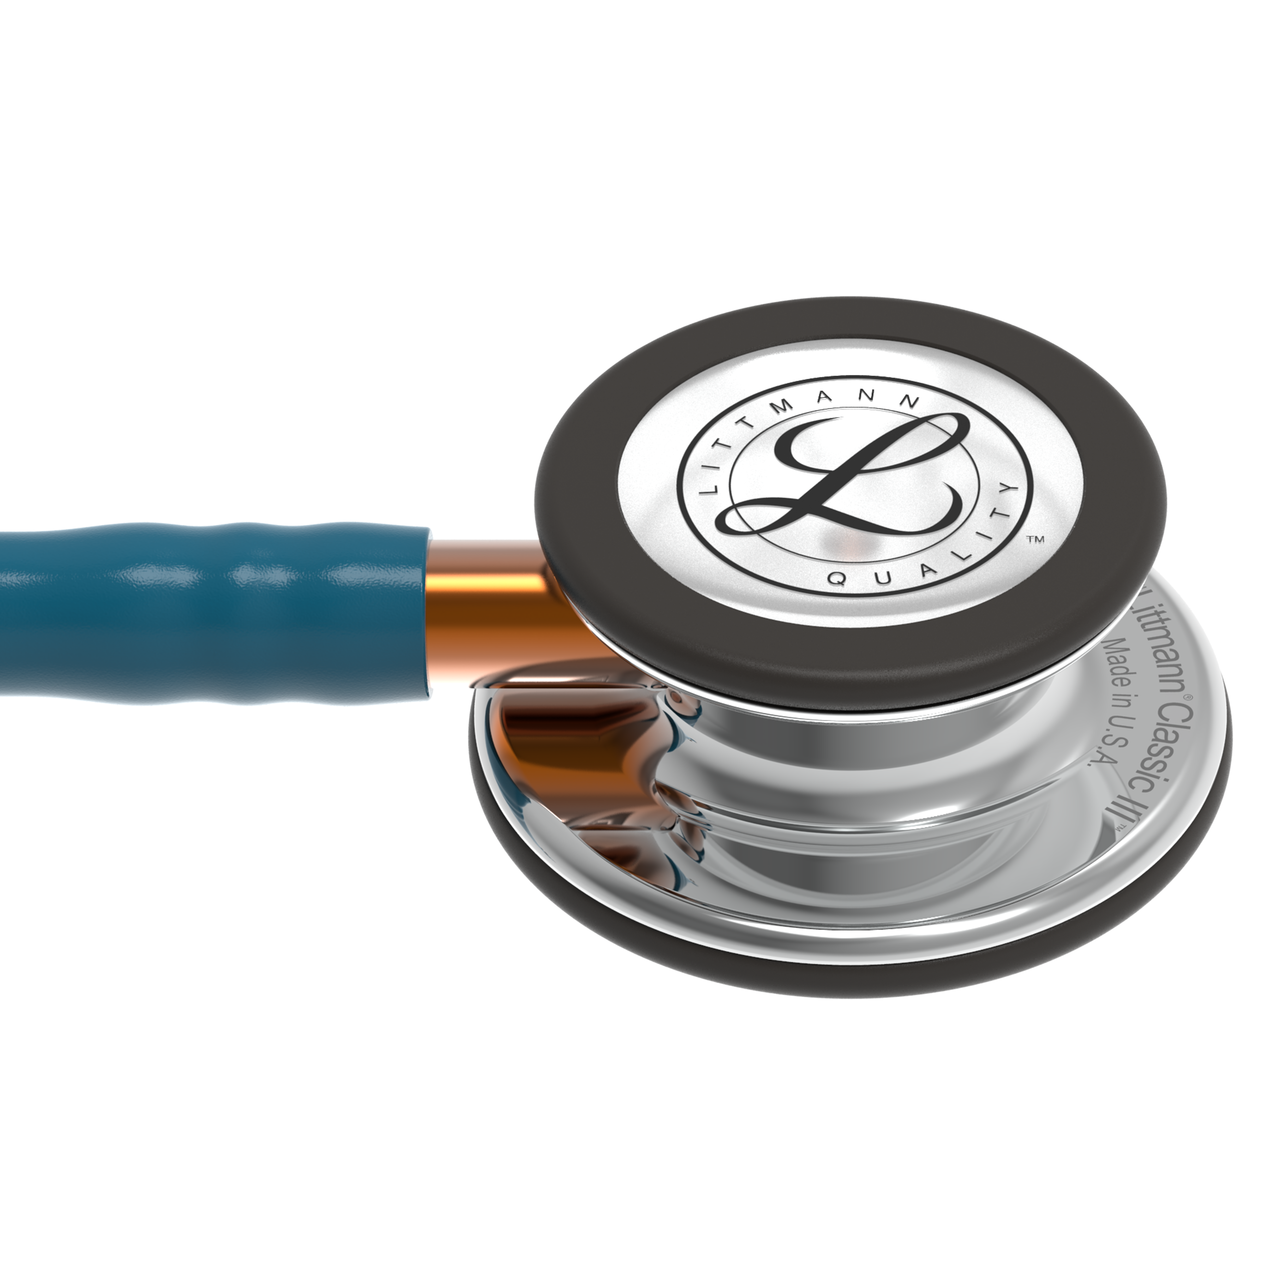 Littmann Classic III Stethoscope, Mirror Caribbean Orange, 5874